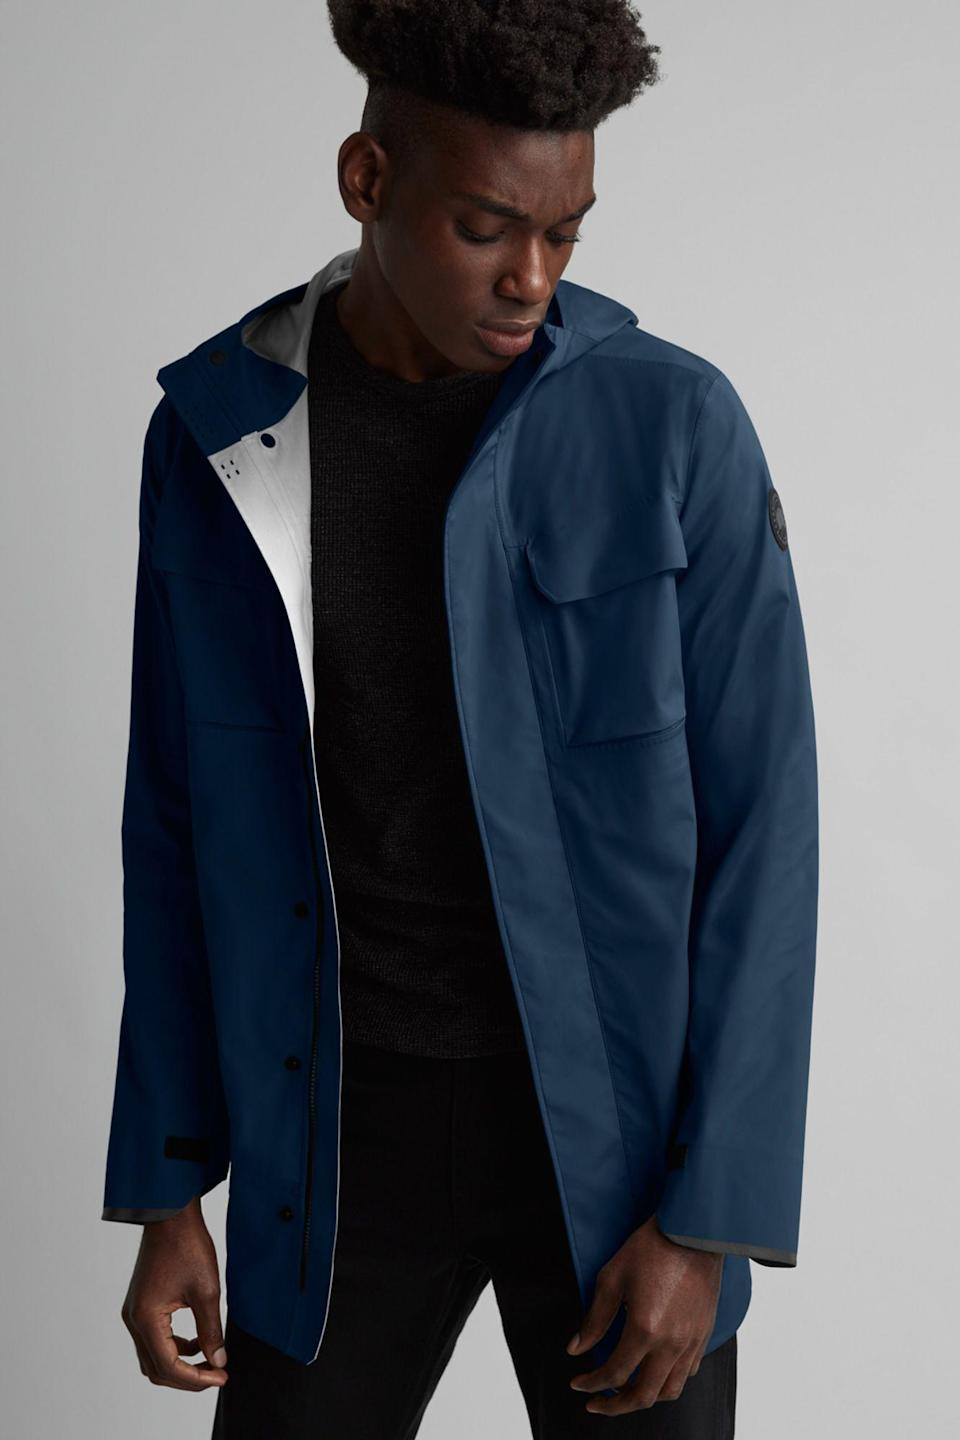 """<p>canadagoose.com</p><p><strong>$650.00</strong></p><p><a href=""""https://go.redirectingat.com?id=74968X1596630&url=https%3A%2F%2Fwww.canadagoose.com%2Fus%2Fen%2Fmens-wascana-rain-jacket-black-label-5612MB.html&sref=https%3A%2F%2Fwww.menshealth.com%2Ftechnology-gear%2Fg27207975%2Fbest-golf-gifts%2F"""" rel=""""nofollow noopener"""" target=""""_blank"""" data-ylk=""""slk:BUY IT HERE"""" class=""""link rapid-noclick-resp"""">BUY IT HERE</a></p><p>For those wetter, cooler days on the course, you'll need a little extra protection against the elements. While this jacket's utility goes well beyond golf, it's sporty enough for those early spring and late fall rounds craved by more dedicated players.</p>"""